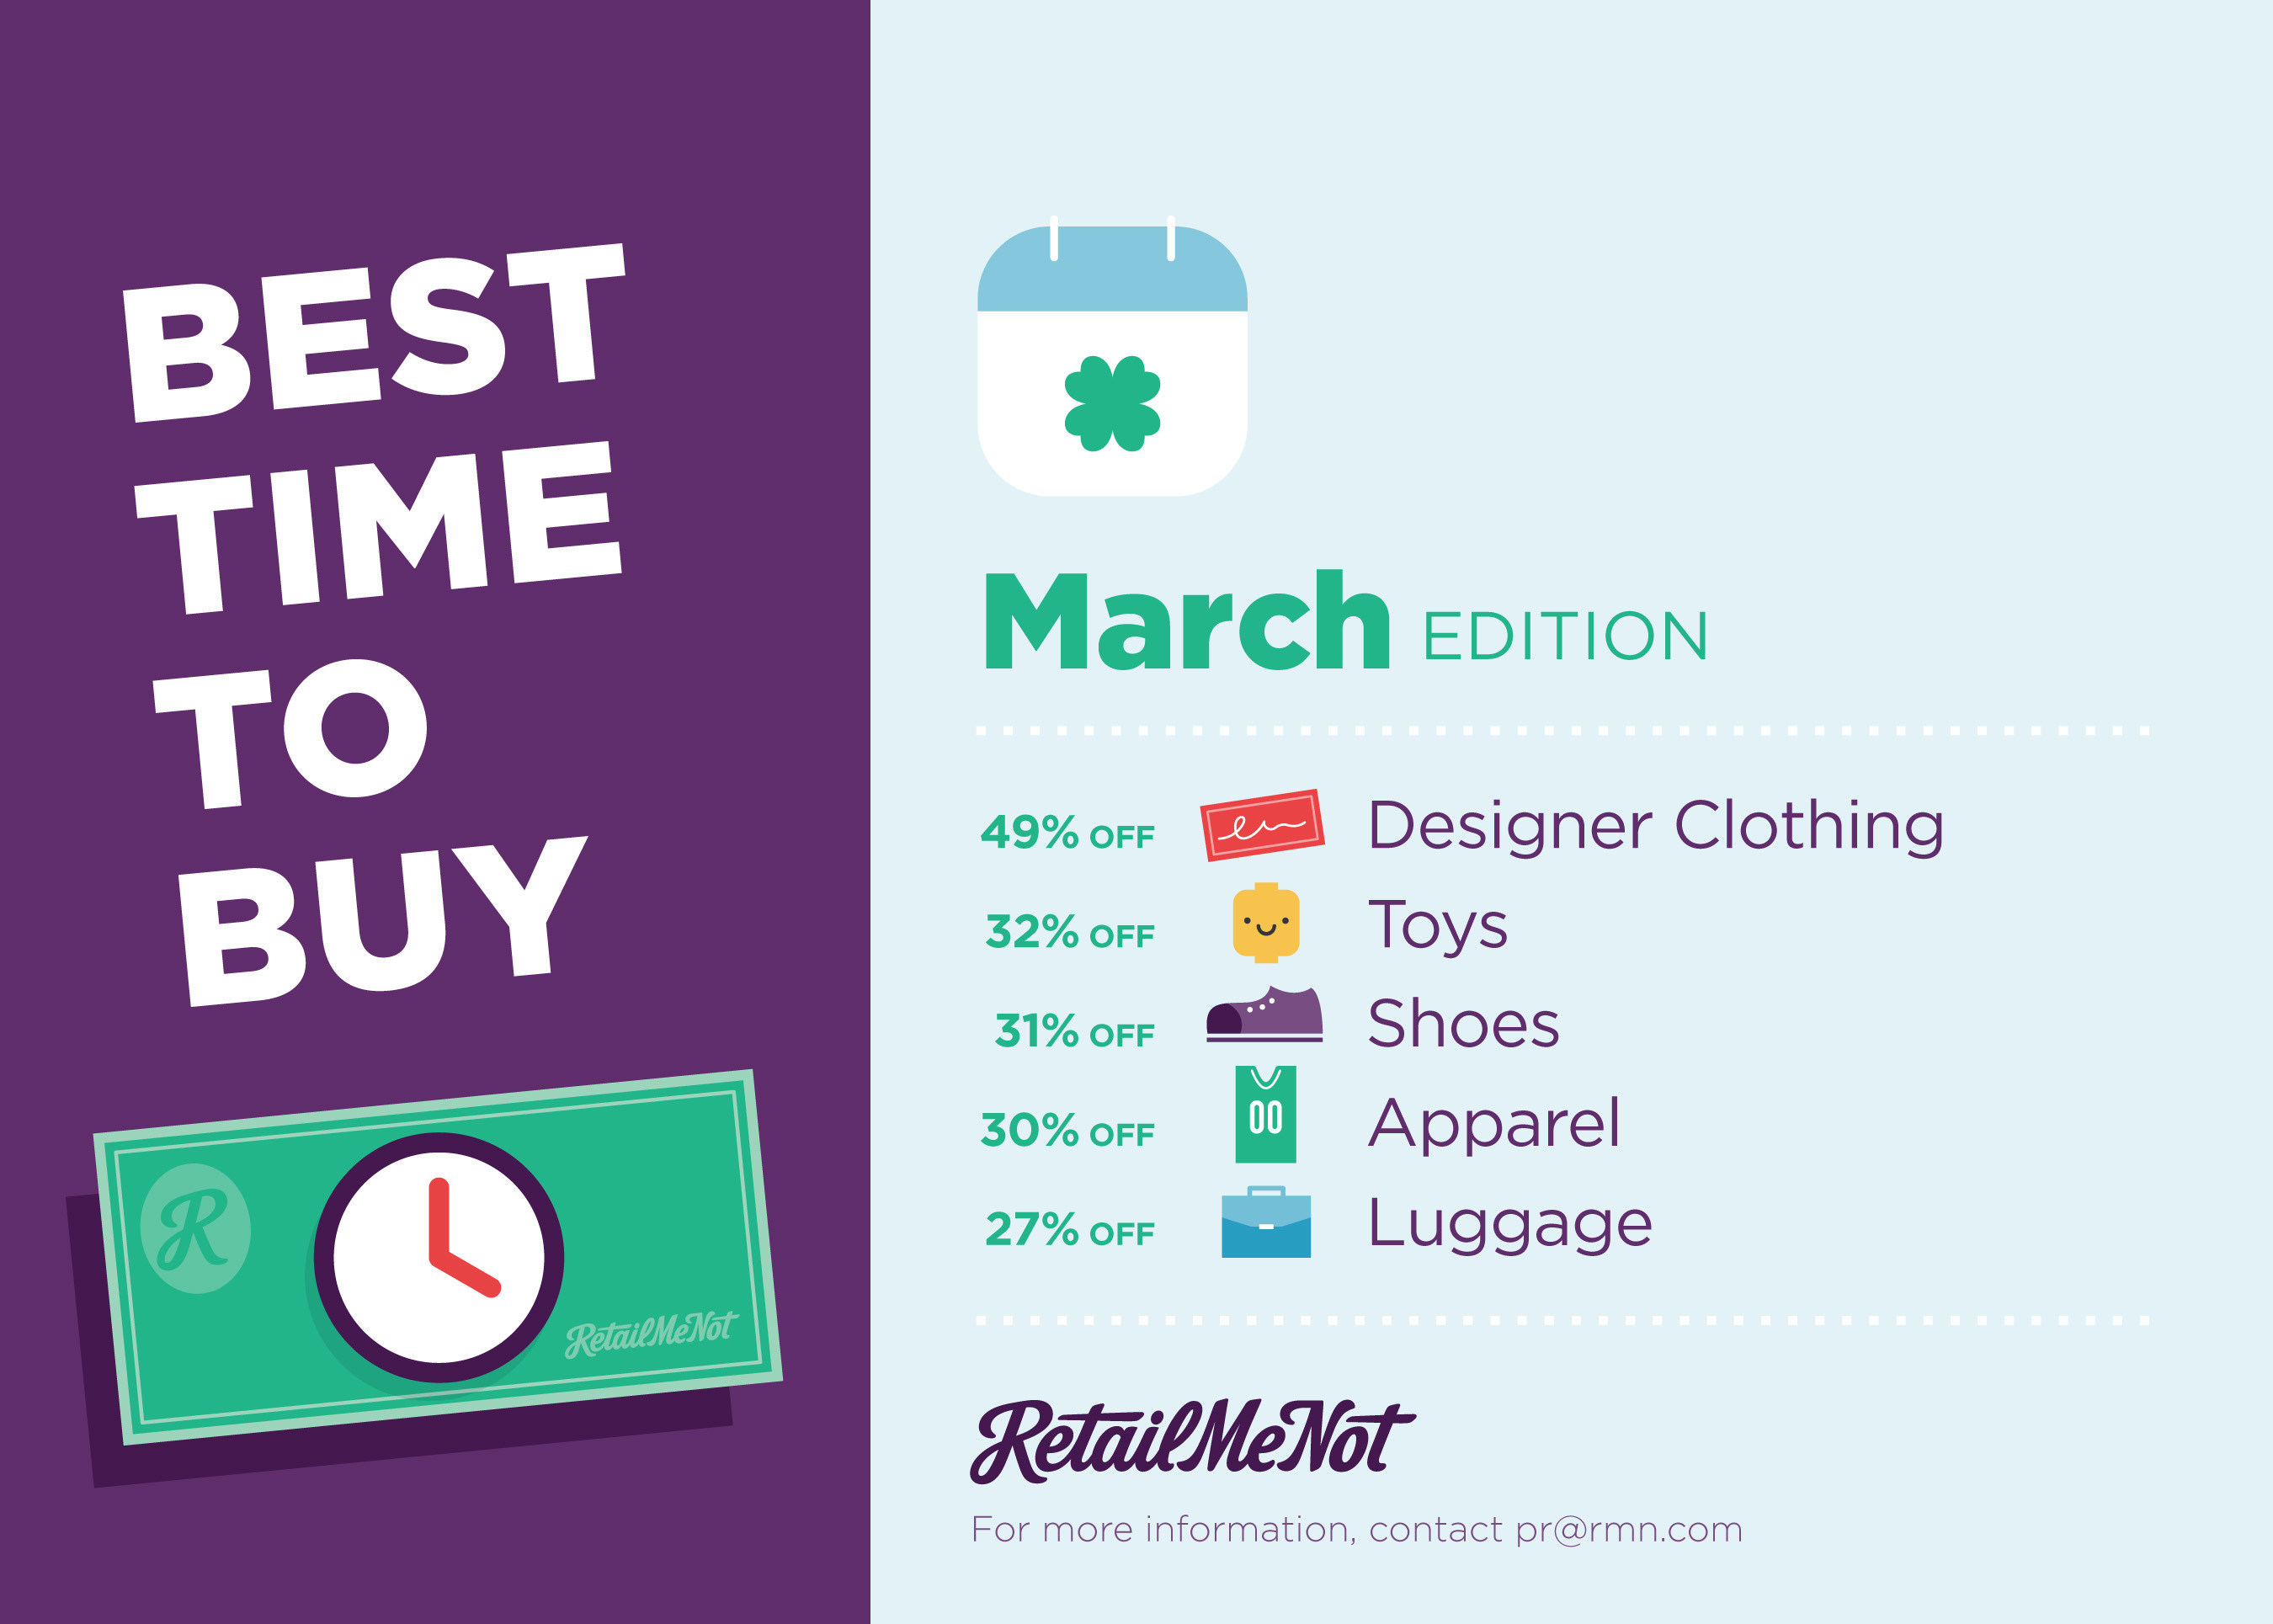 Best Things to Buy in March, According to RetailMeNot